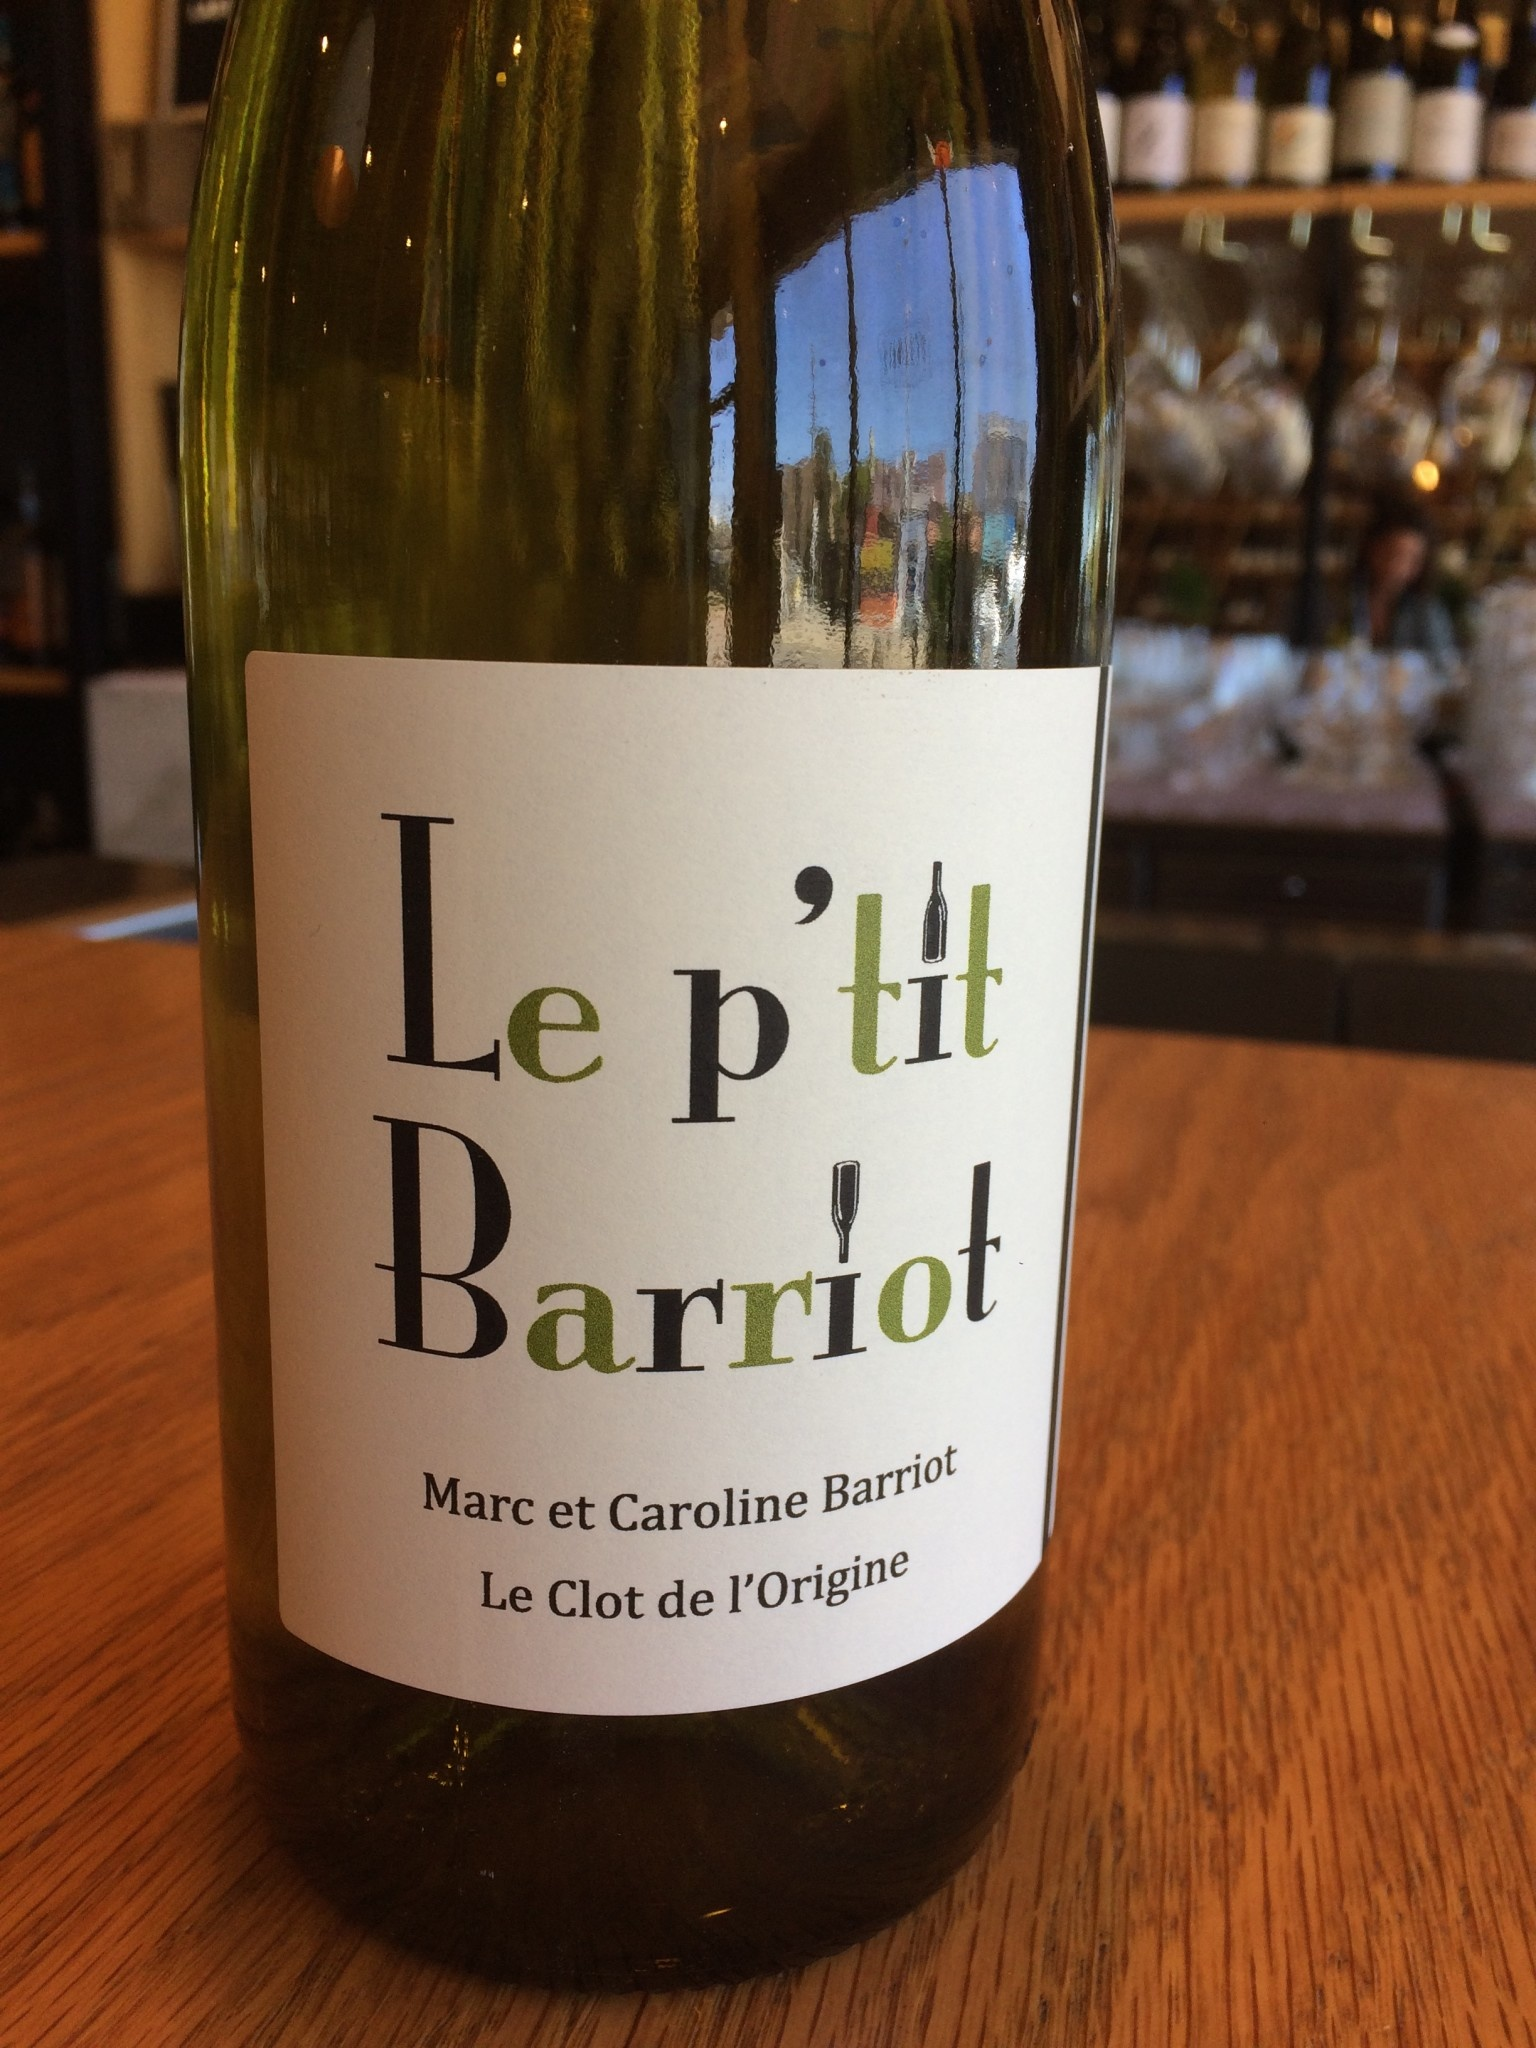 Marc Barriot 2018 Marc Barriot 'Le p'tit Barriot' Blanc de Noirs 750ml